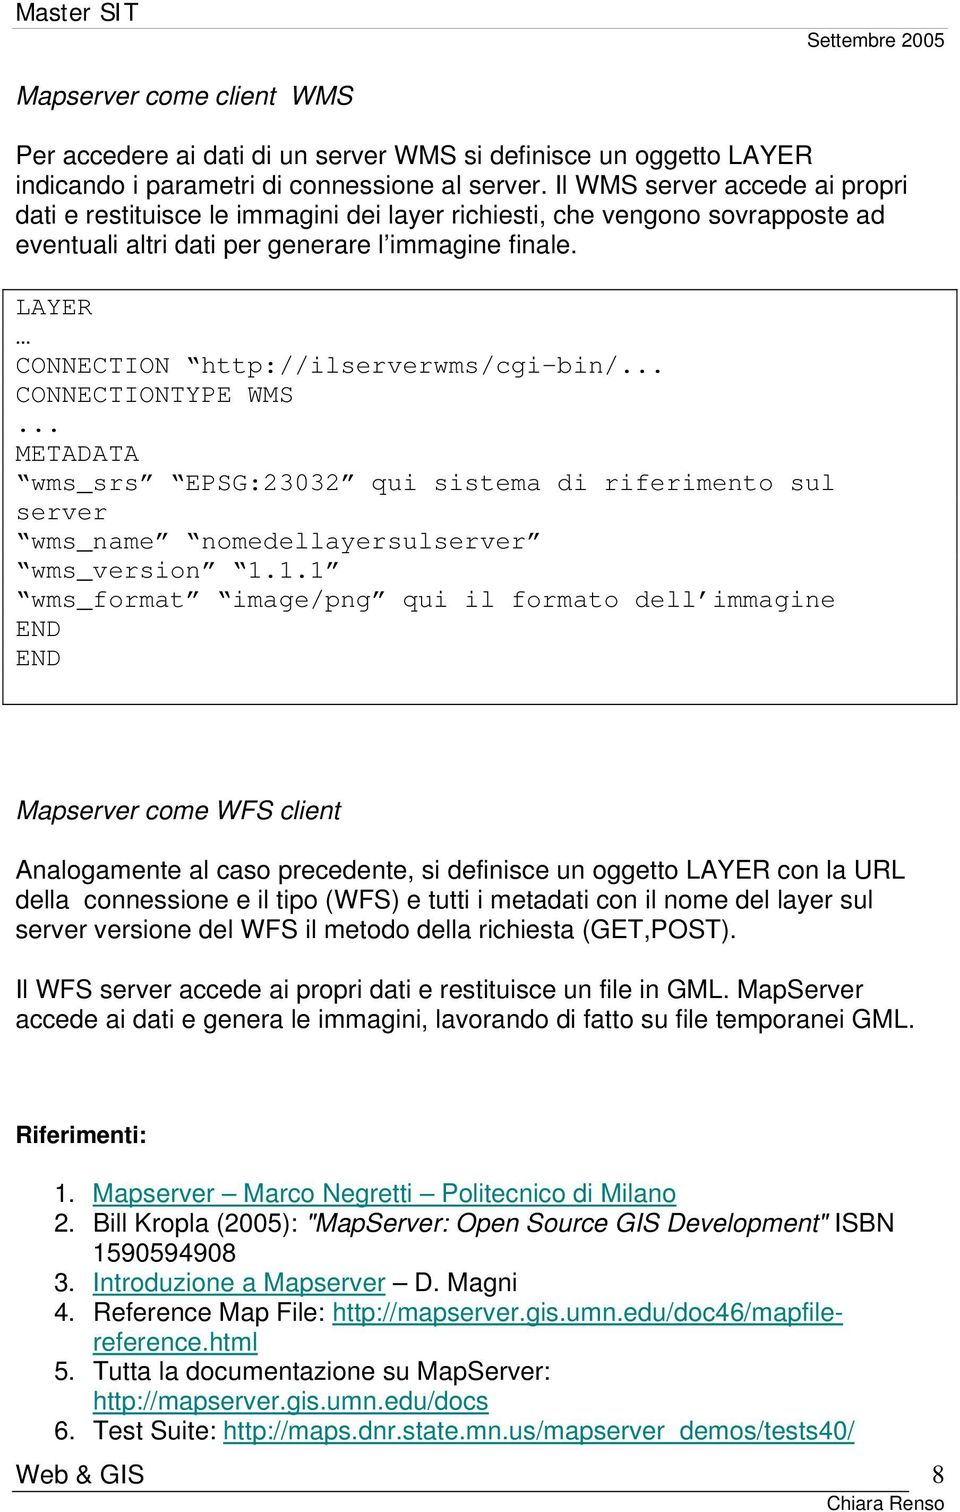 CONNECTION http://ilserverwms/cgi-bin/... CONNECTIONTYPE WMS... wms_srs EPSG:23032 qui sistema di riferimento sul server wms_name nomedellayersulserver wms_version 1.